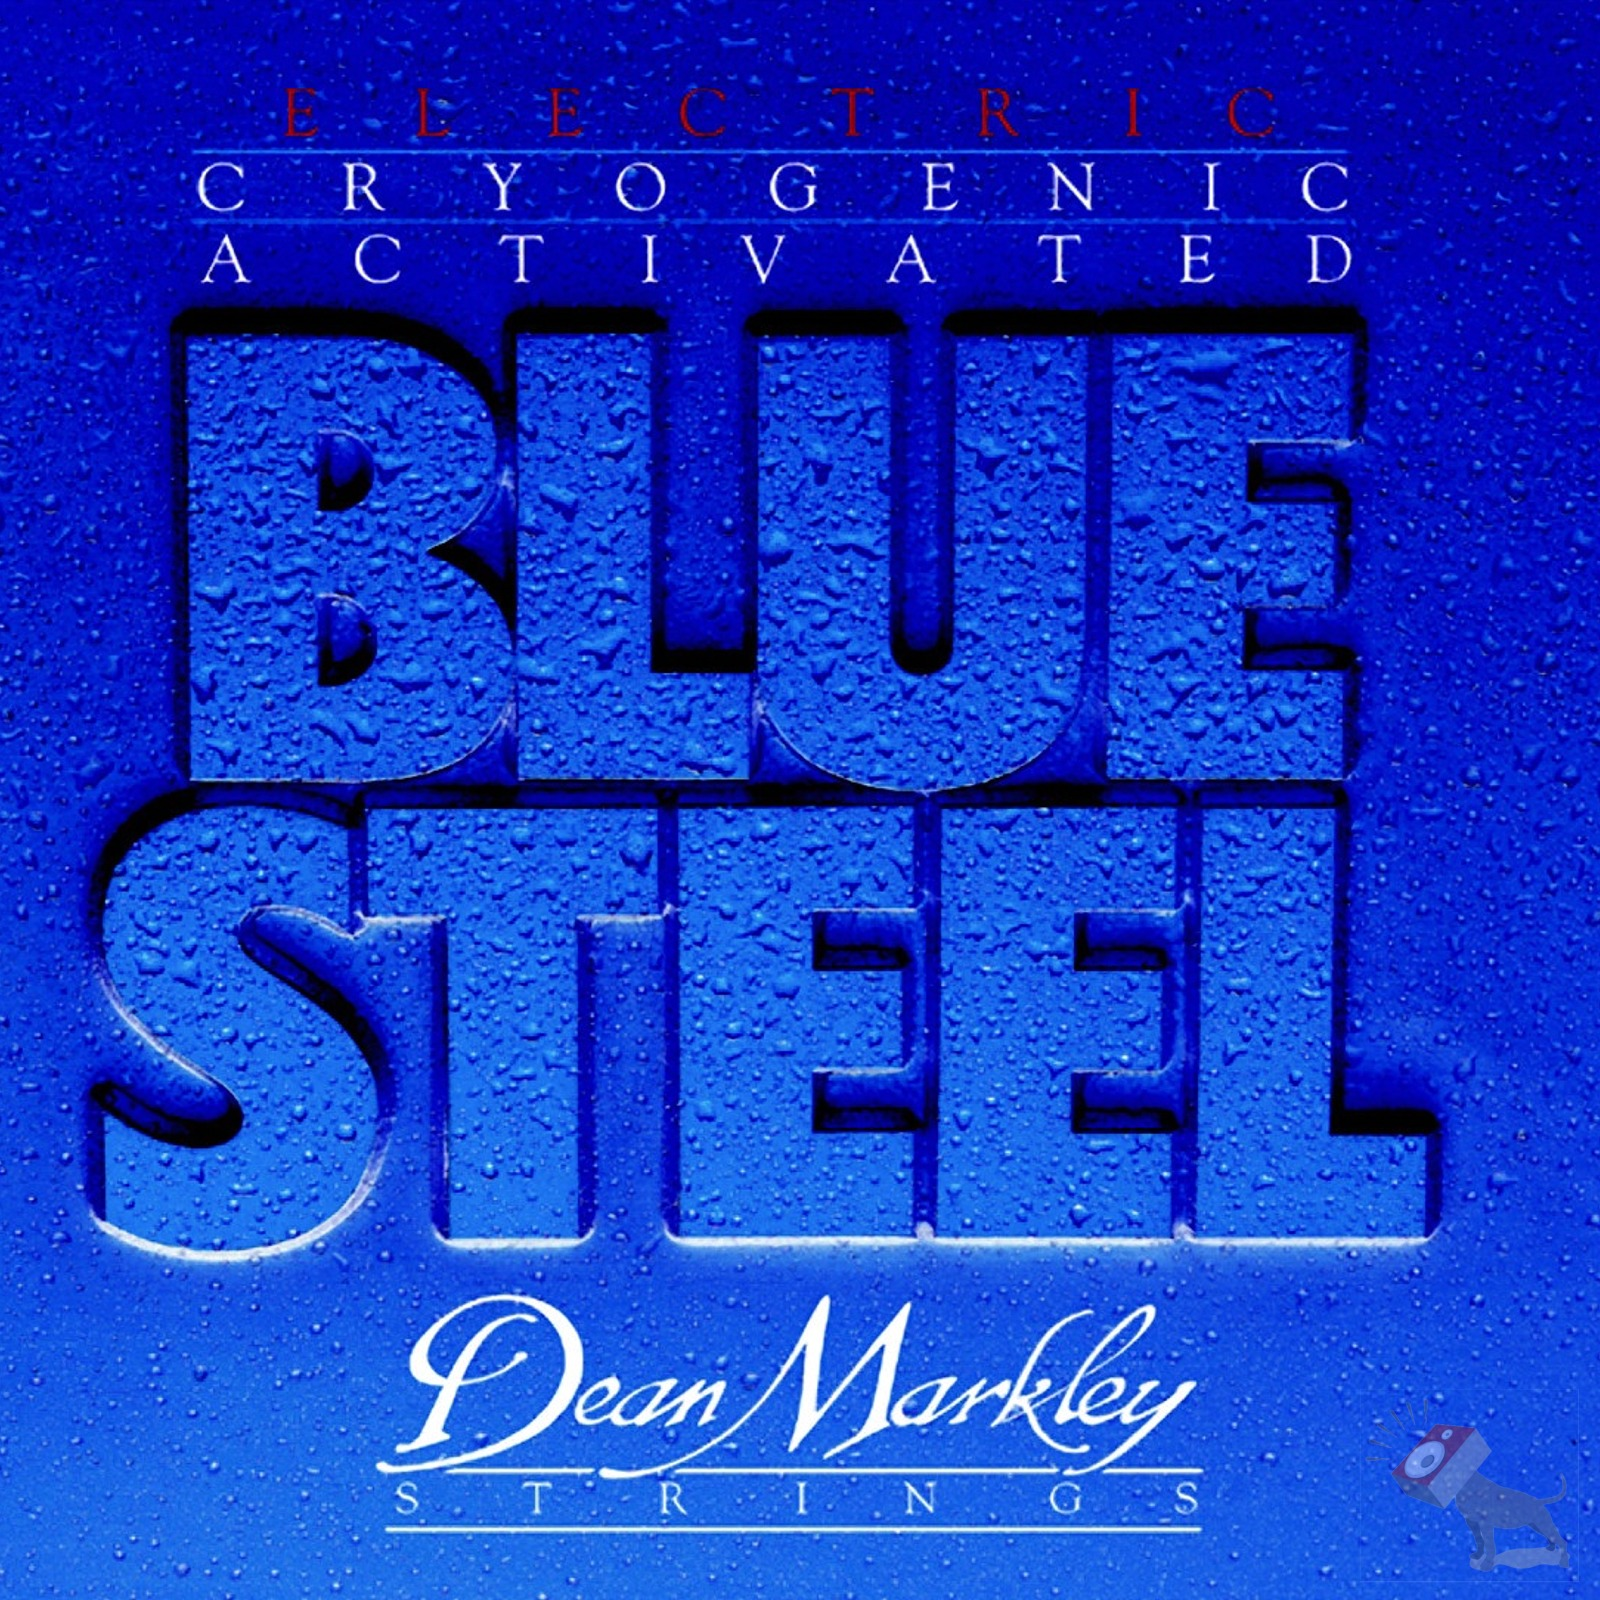 Blue Steel Electric Guitar Strings : dean markley 2562a blue steel electric guitar strings medium 7 string 11 60 ~ Vivirlamusica.com Haus und Dekorationen